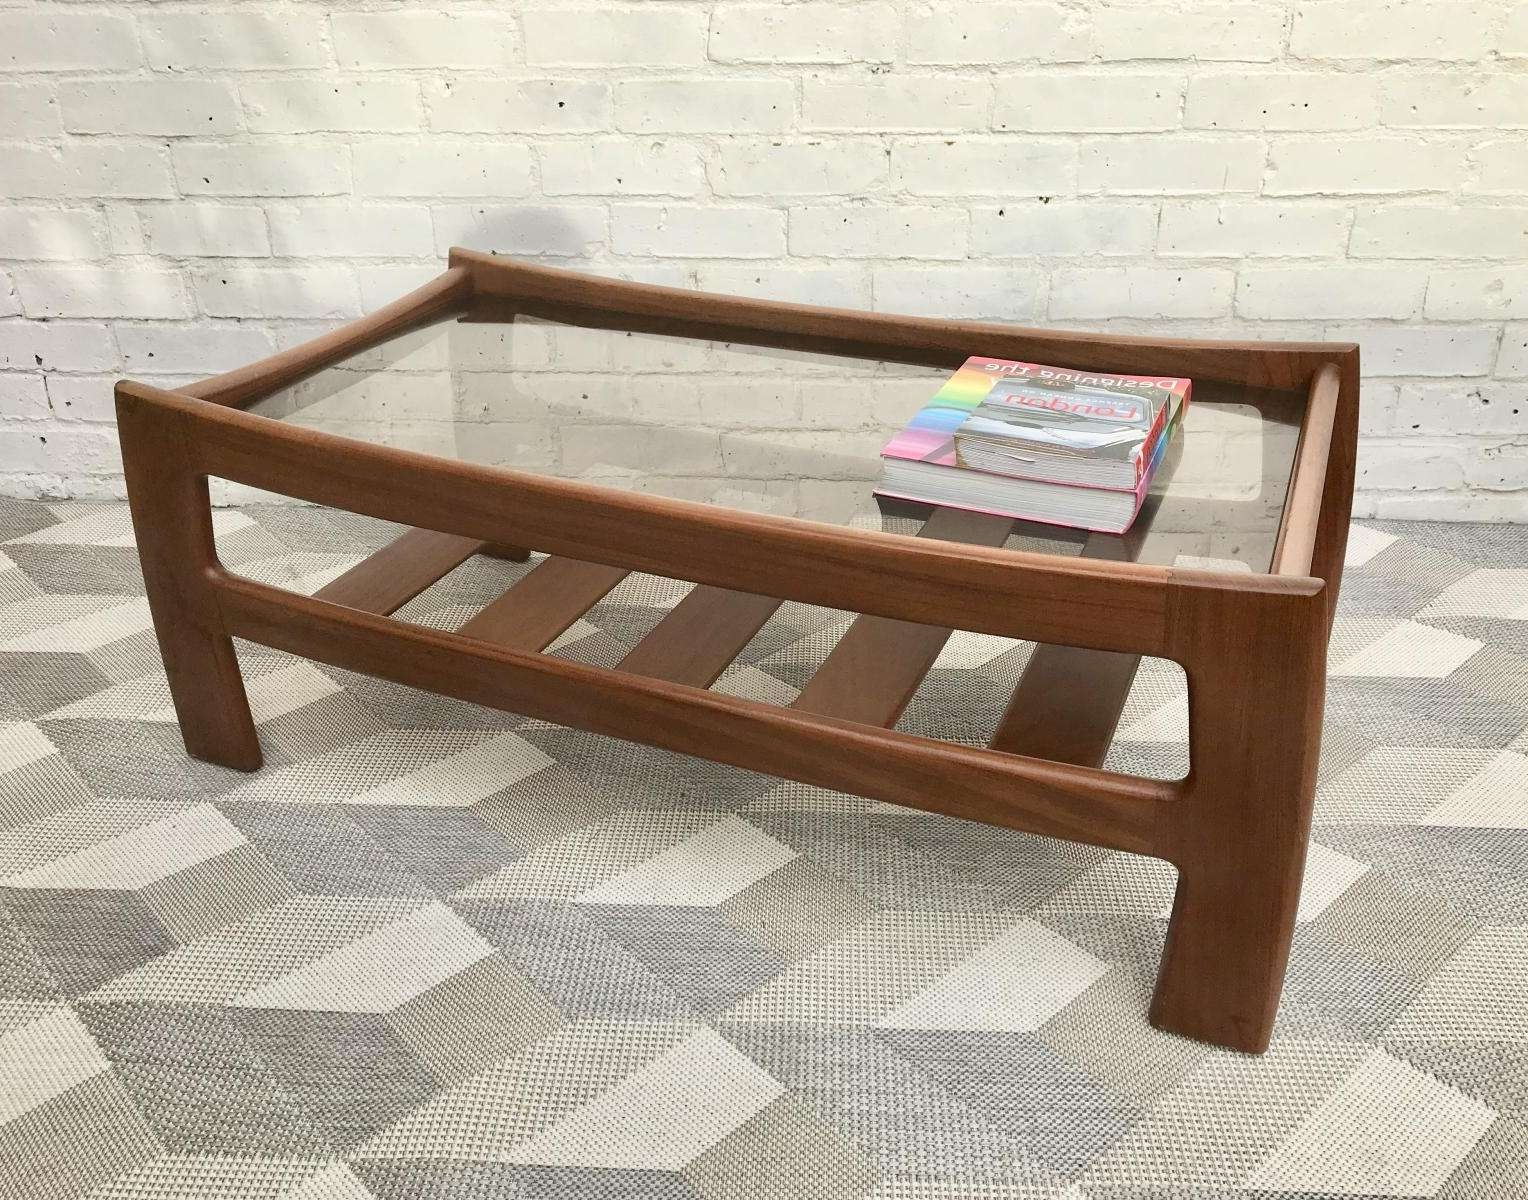 Vintage Glass Coffee Table With Shelf From G Plan For Sale At Pamono Regarding Most Recently Released Glass Coffee Table With Shelf (Gallery 11 of 20)